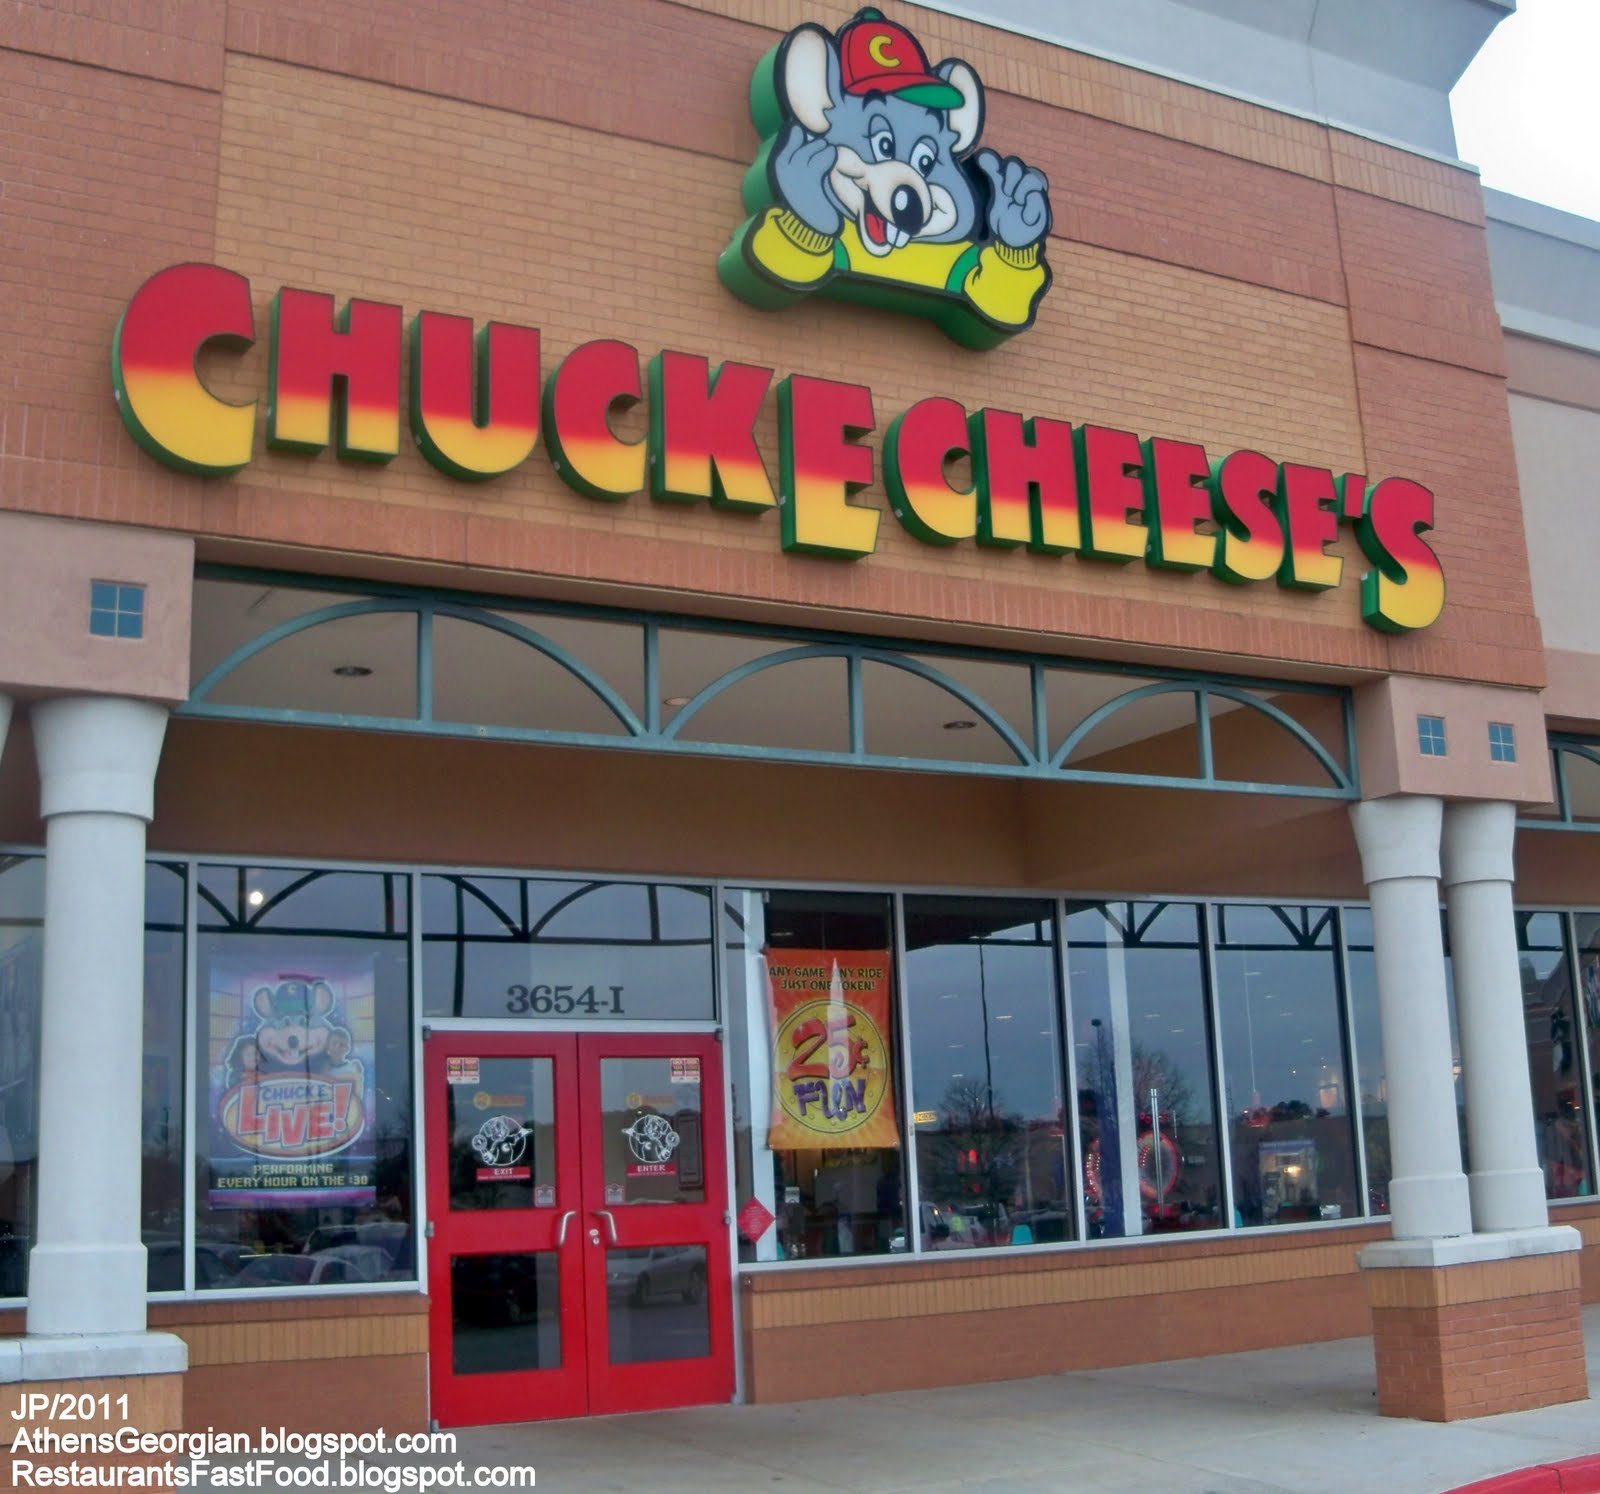 Bring families together in a wholesome environment for fun, games and kids. Chuck E. Cheese's consists of over entertainment centers in 48 states and 6 countries.